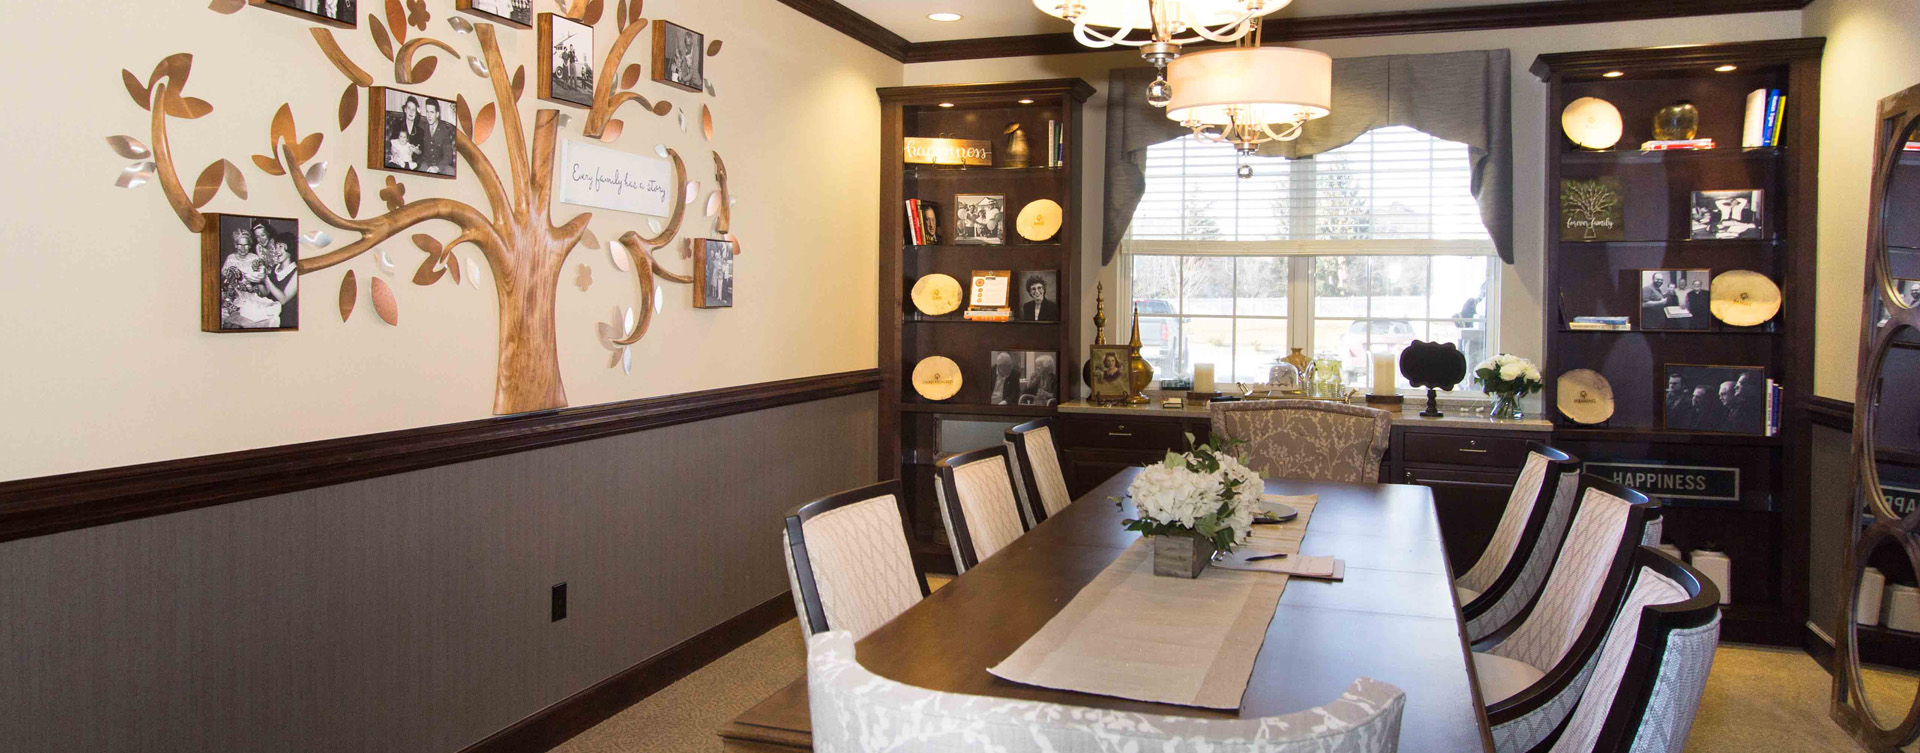 Food is best when shared with family and friends in the private dining room at Bickford of Gurnee